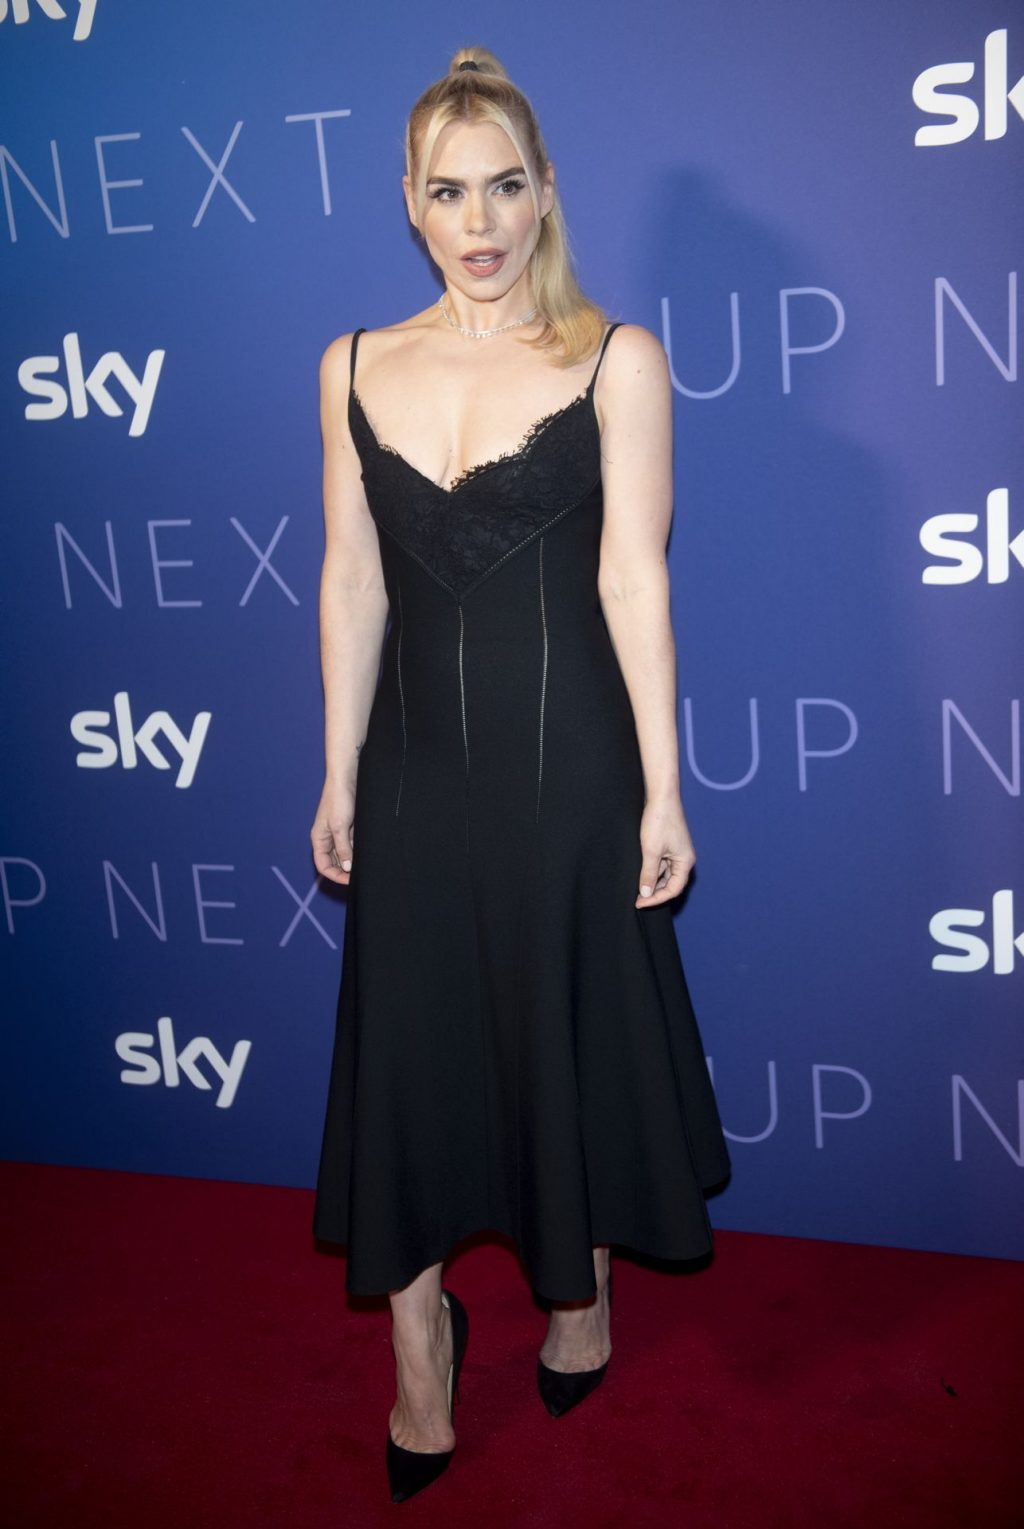 Billie Piper Sexy The Fappening Blog 49 1024x1529 - Billie Piper Smiles at the Sky Up Next Event (67 Photos)